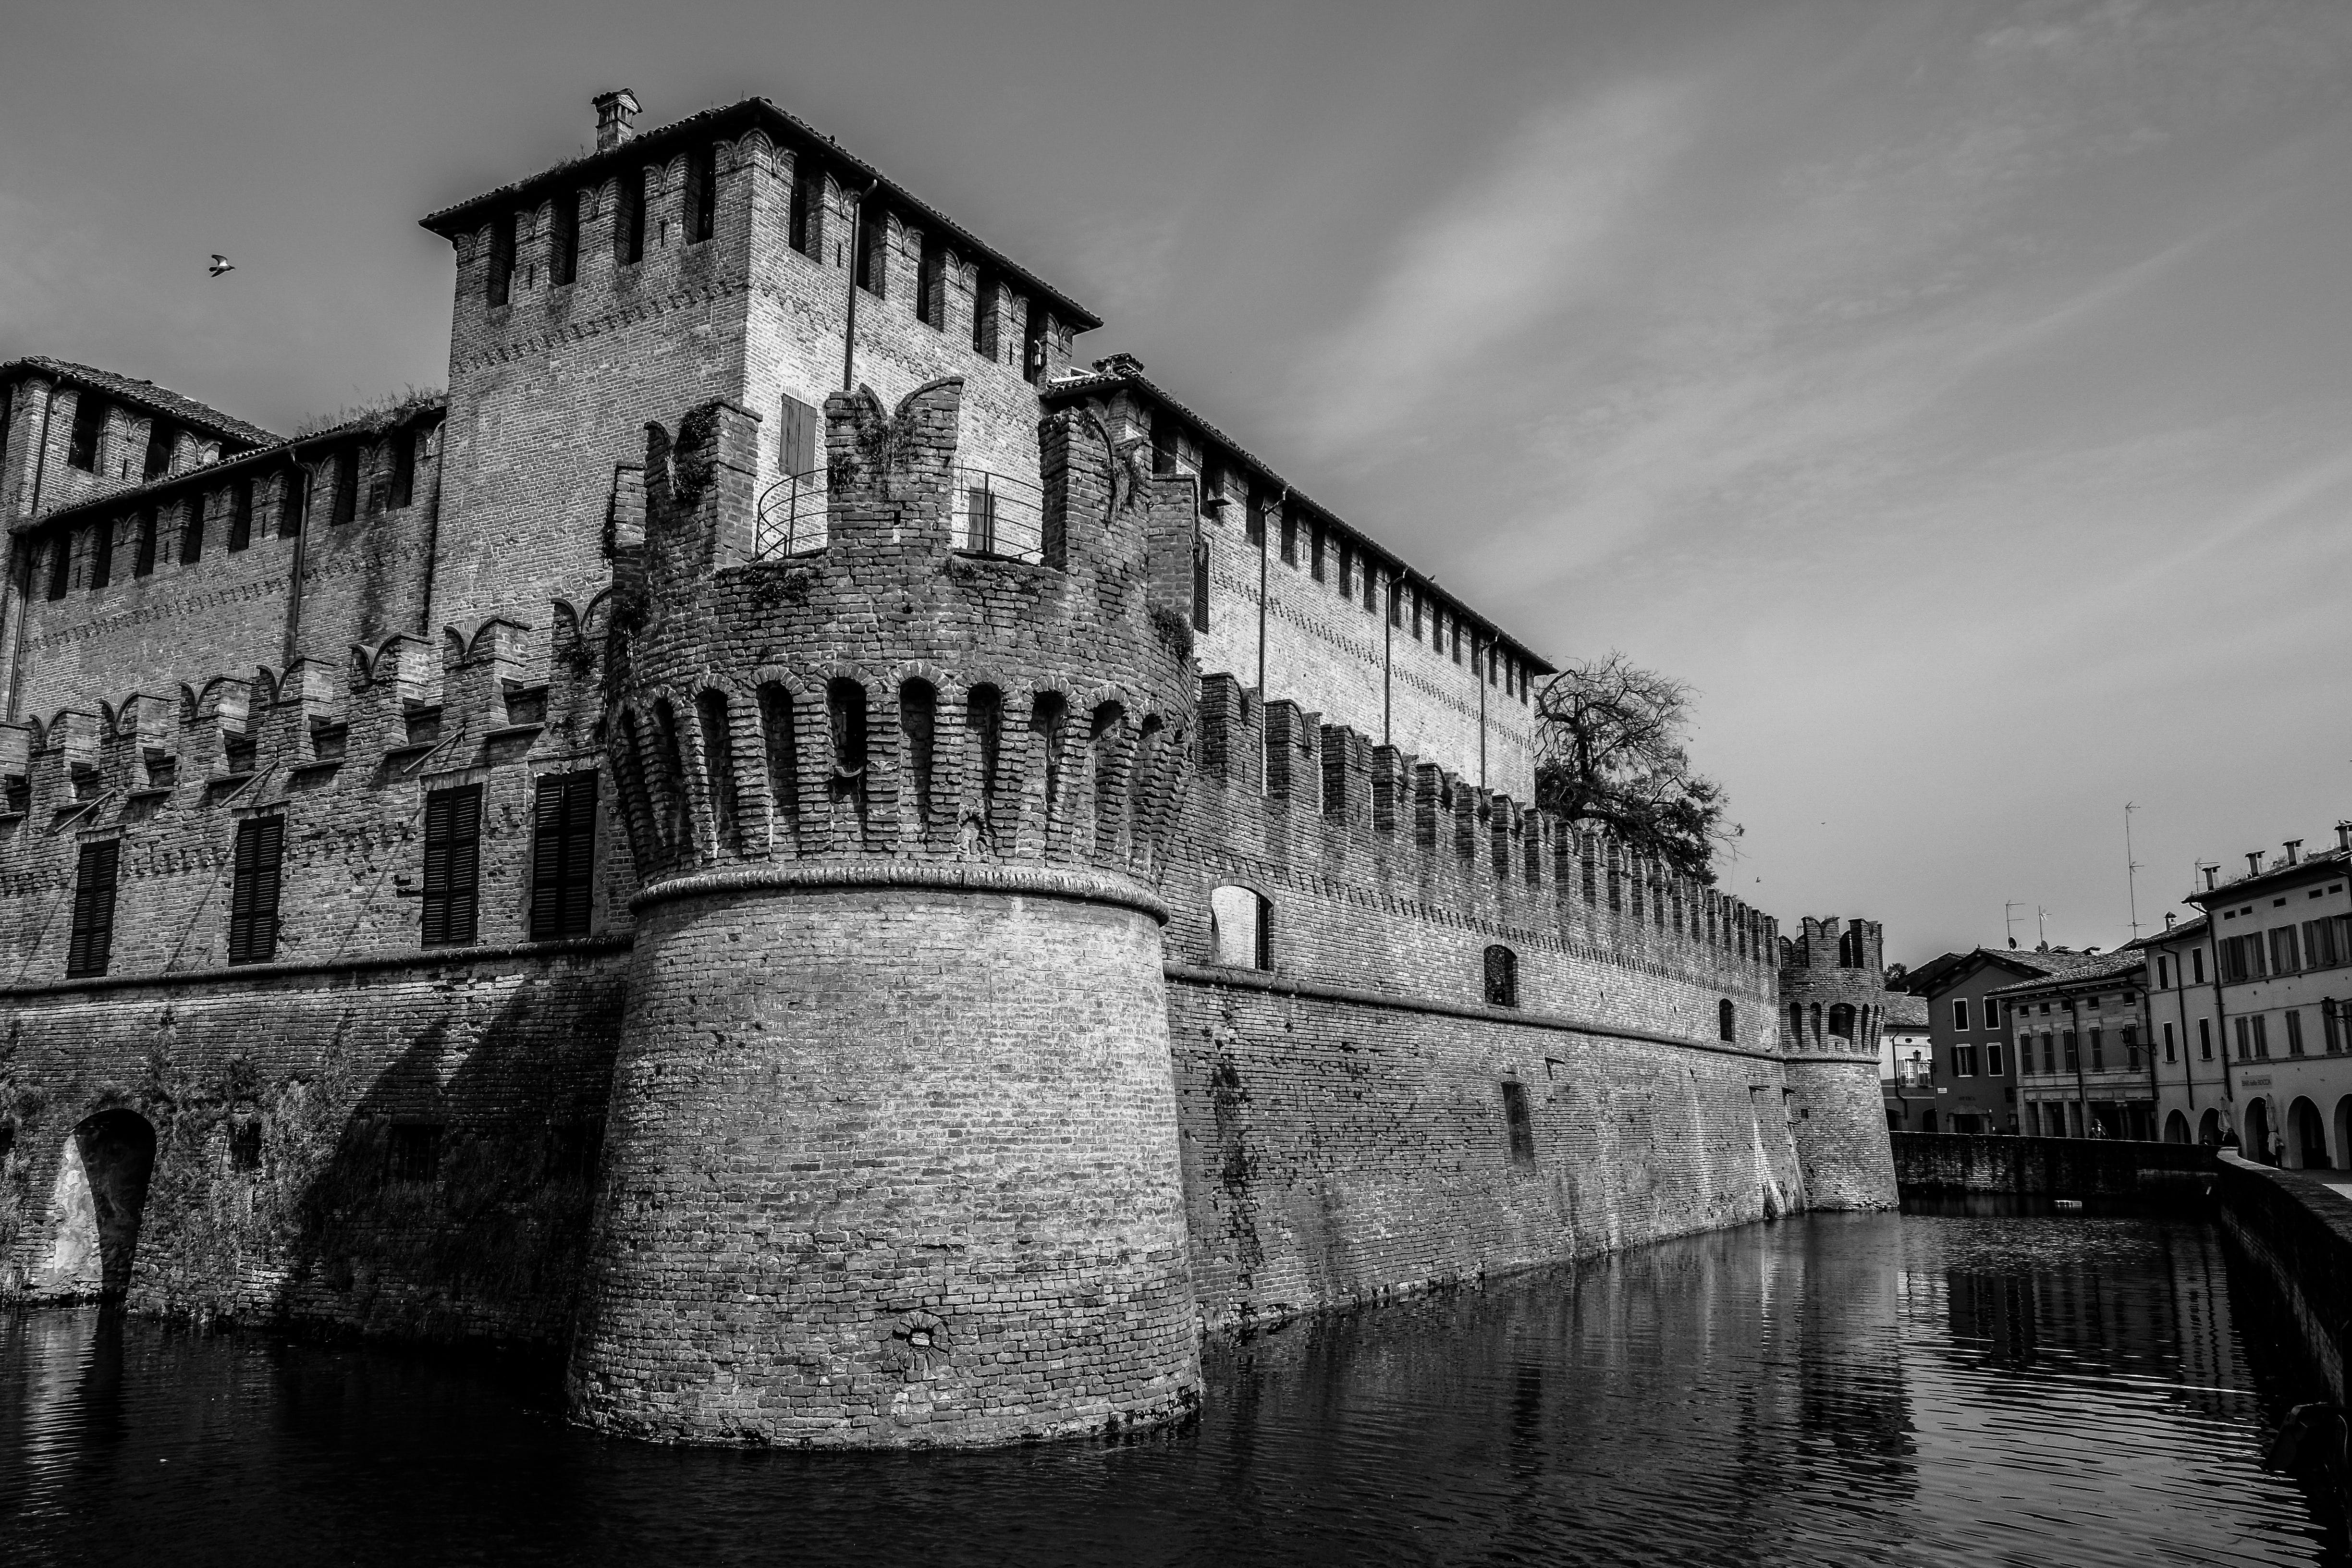 Grayscale Photography of Castle Near Body of Water